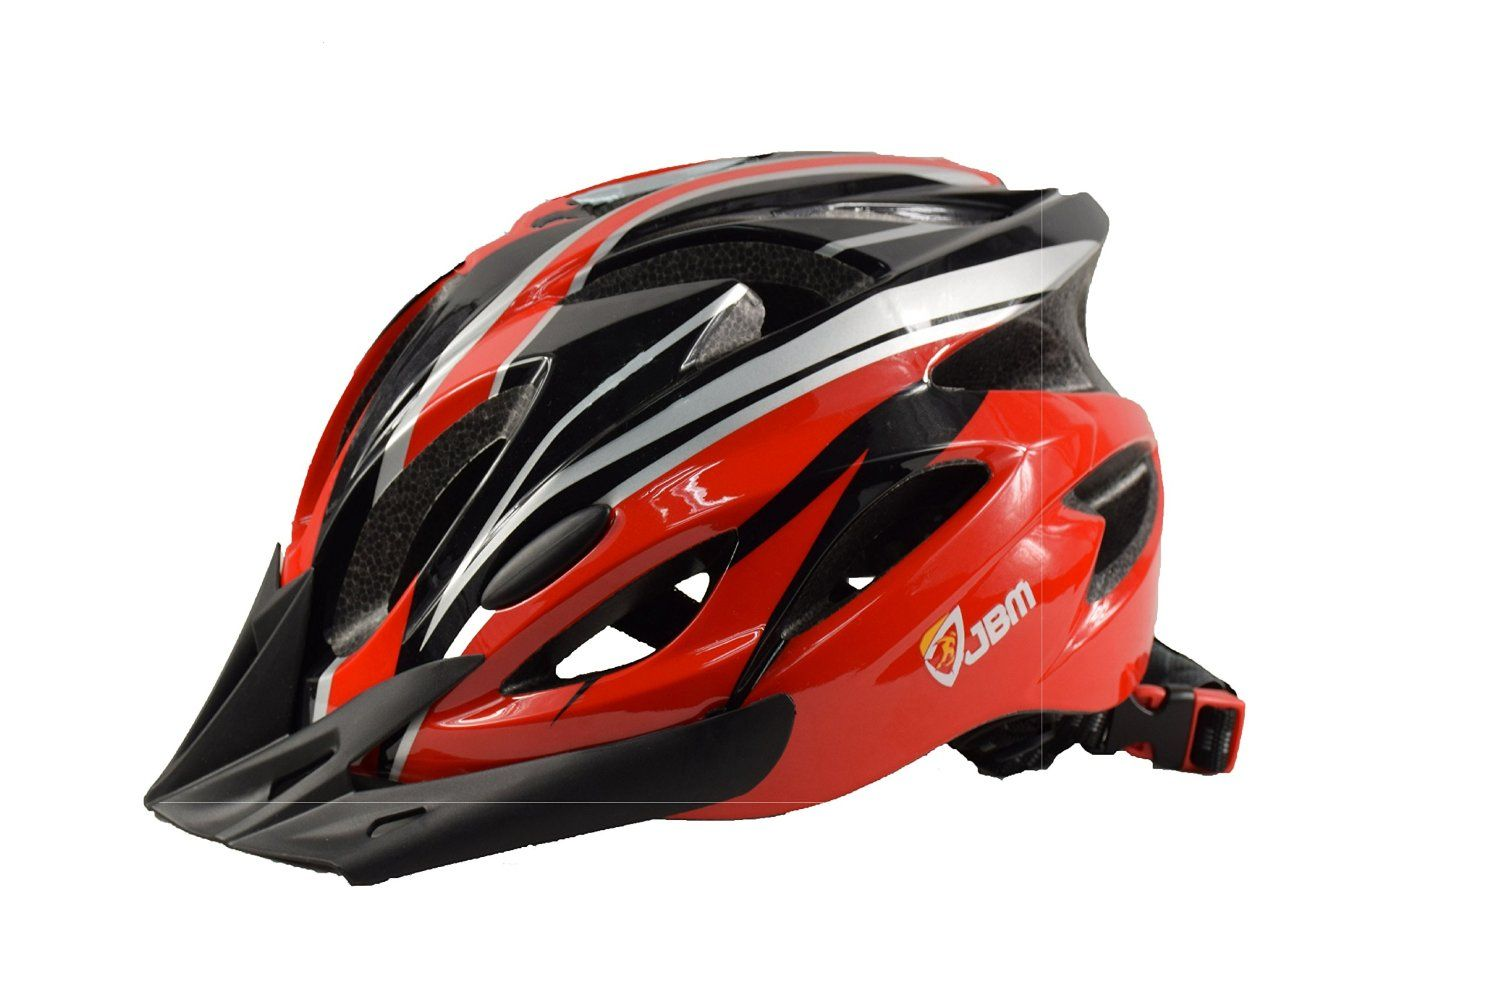 Amazon Com Jbm Adult Cycling Bike Helmet Specialized For Mens Womens Safety Protection Red Blue Yellow Http Www Womens Safety Cycling Bikes Bike Helmet